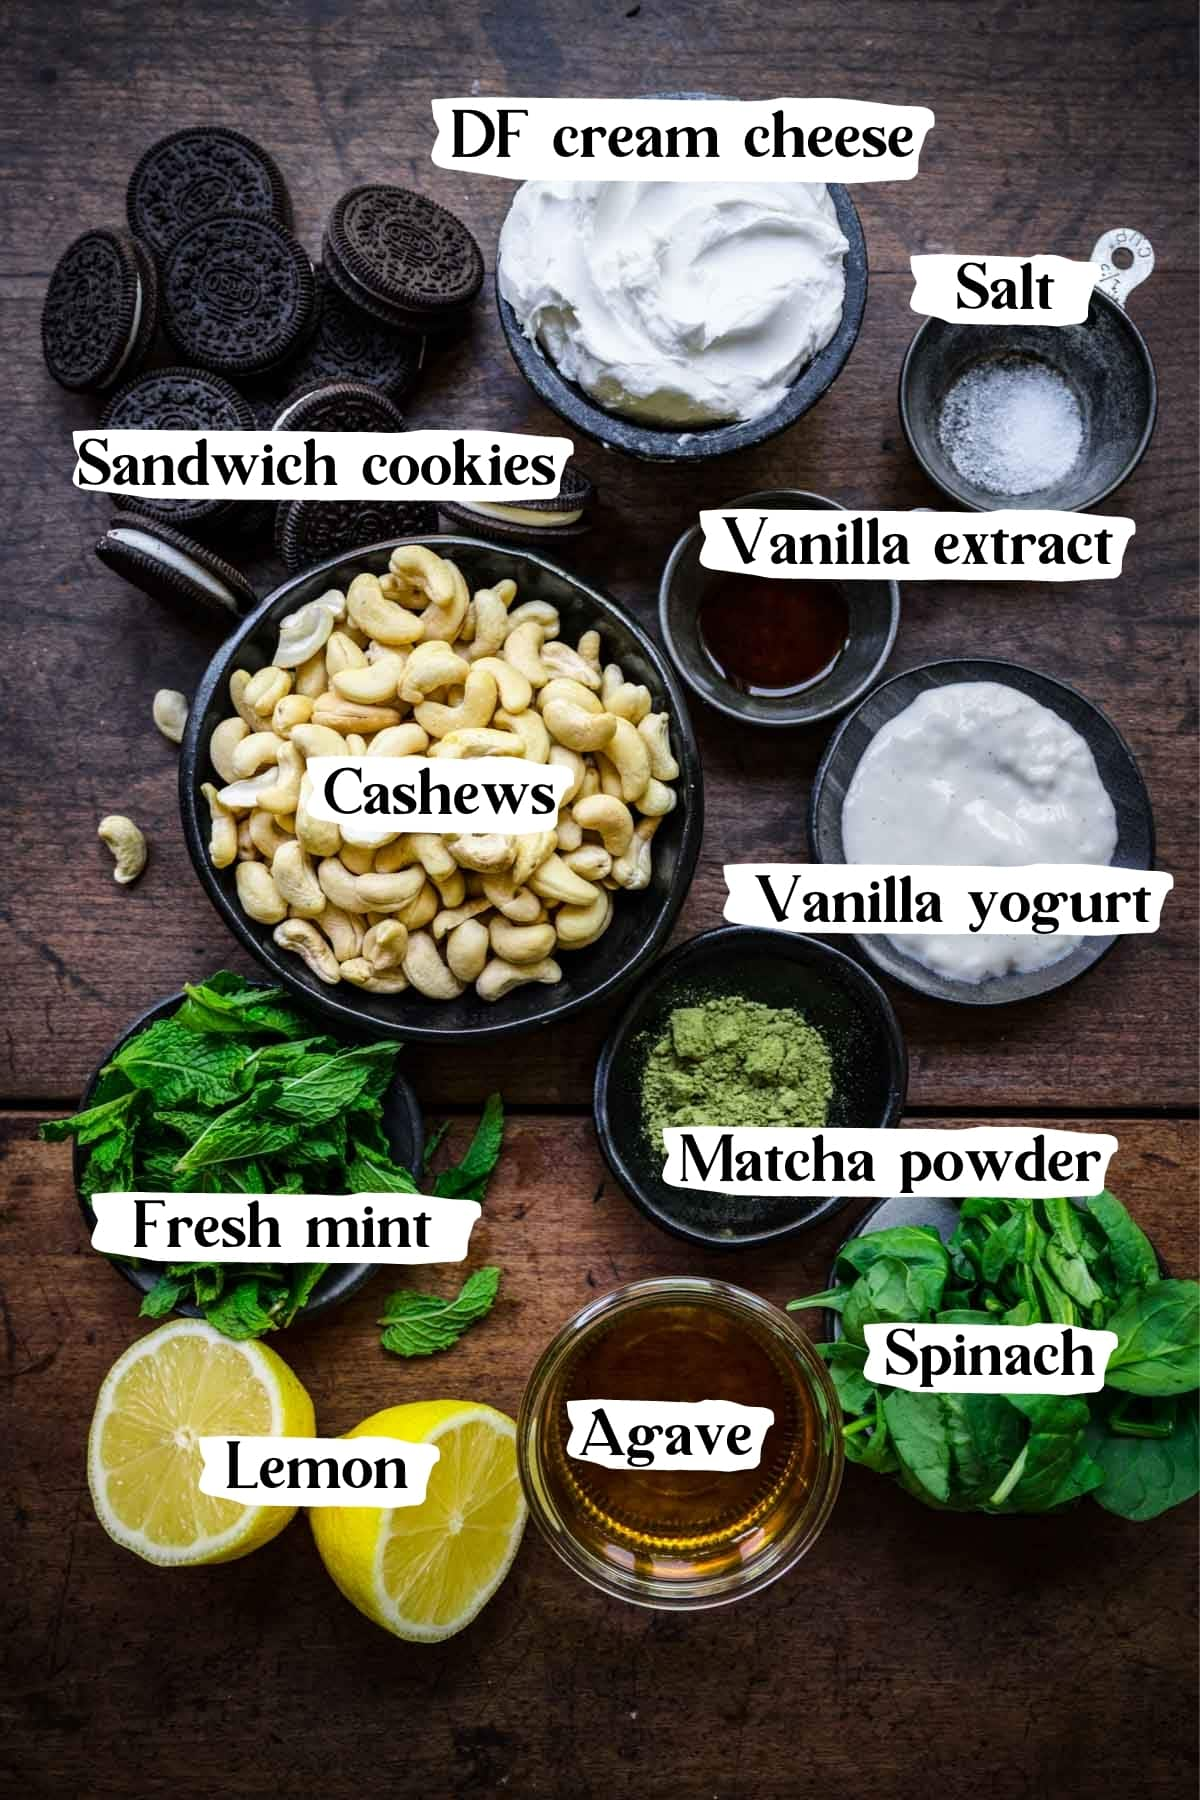 Overhead shot of cheesecake ingredients, including cream cheese, cashews, and cookies.